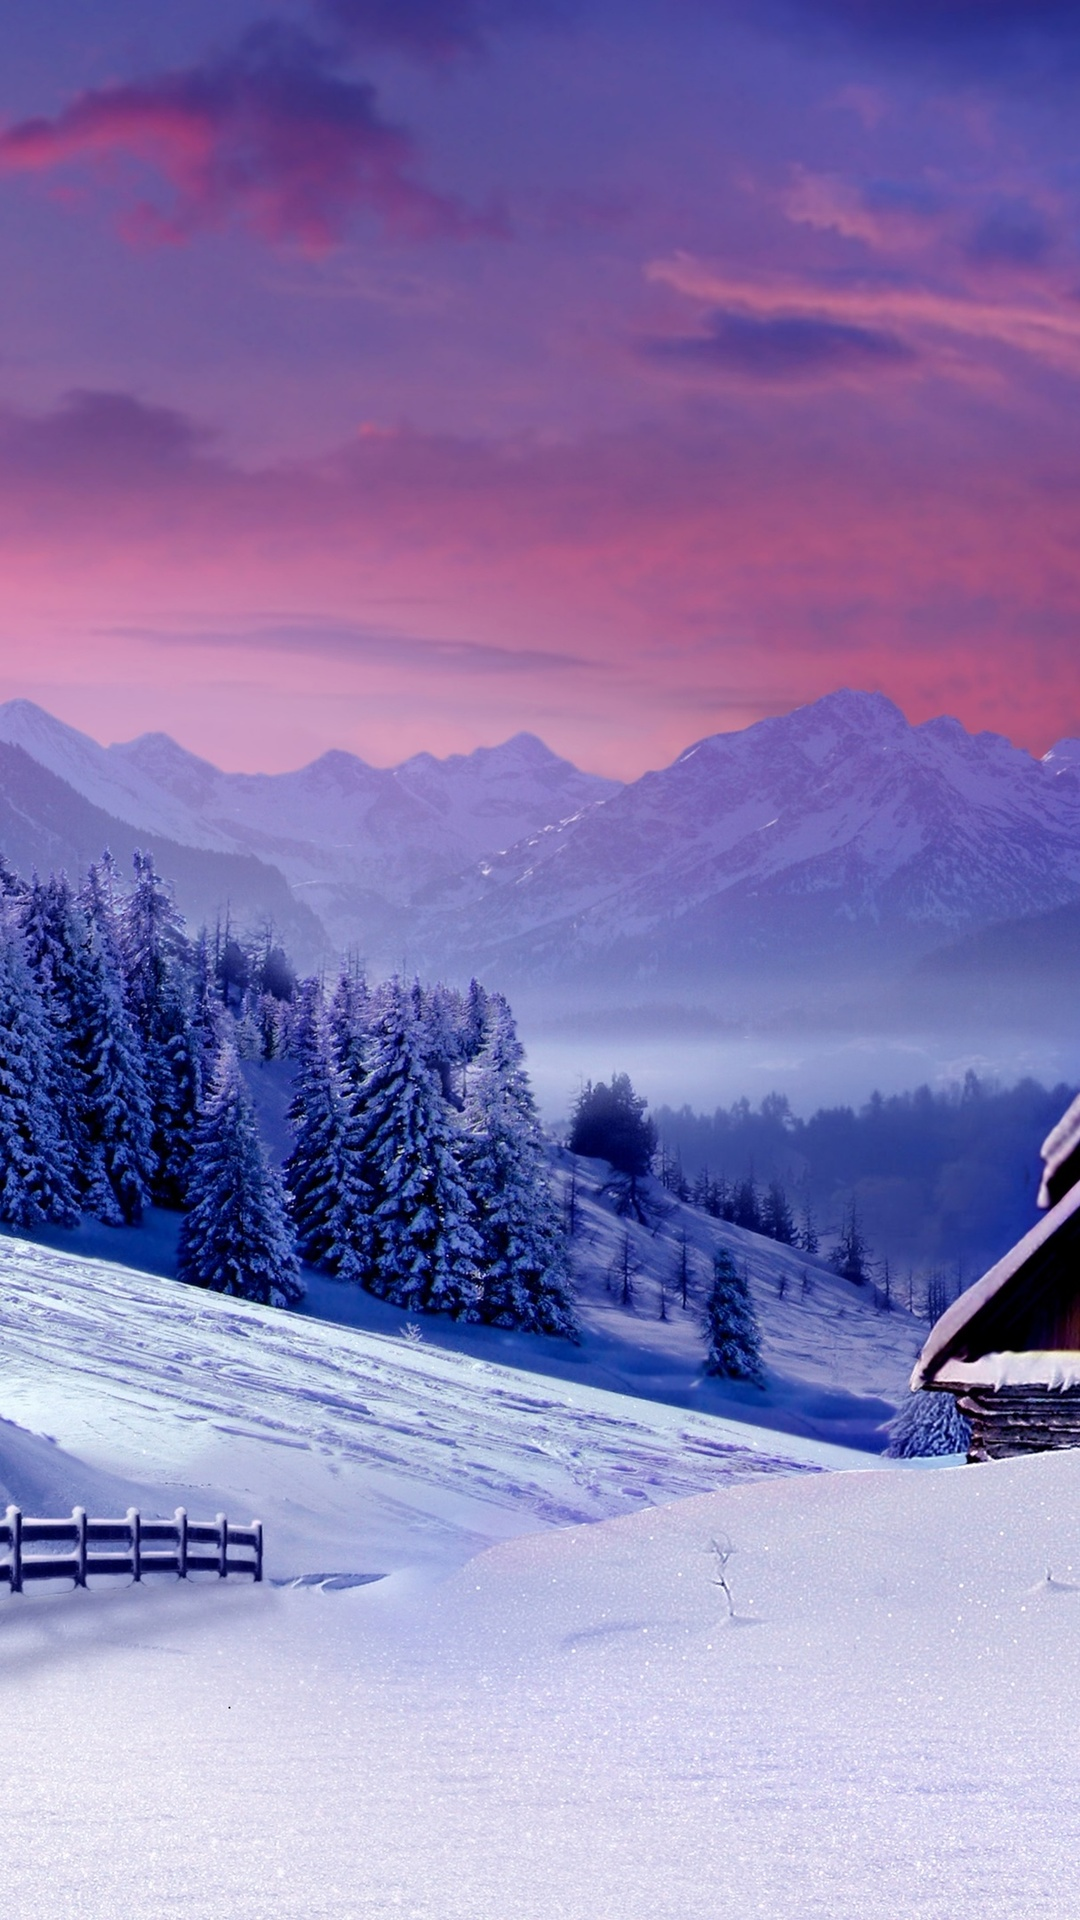 Winter Landscape 4K Ultra HD wallpaper 4k WallpaperNet 1080x1920